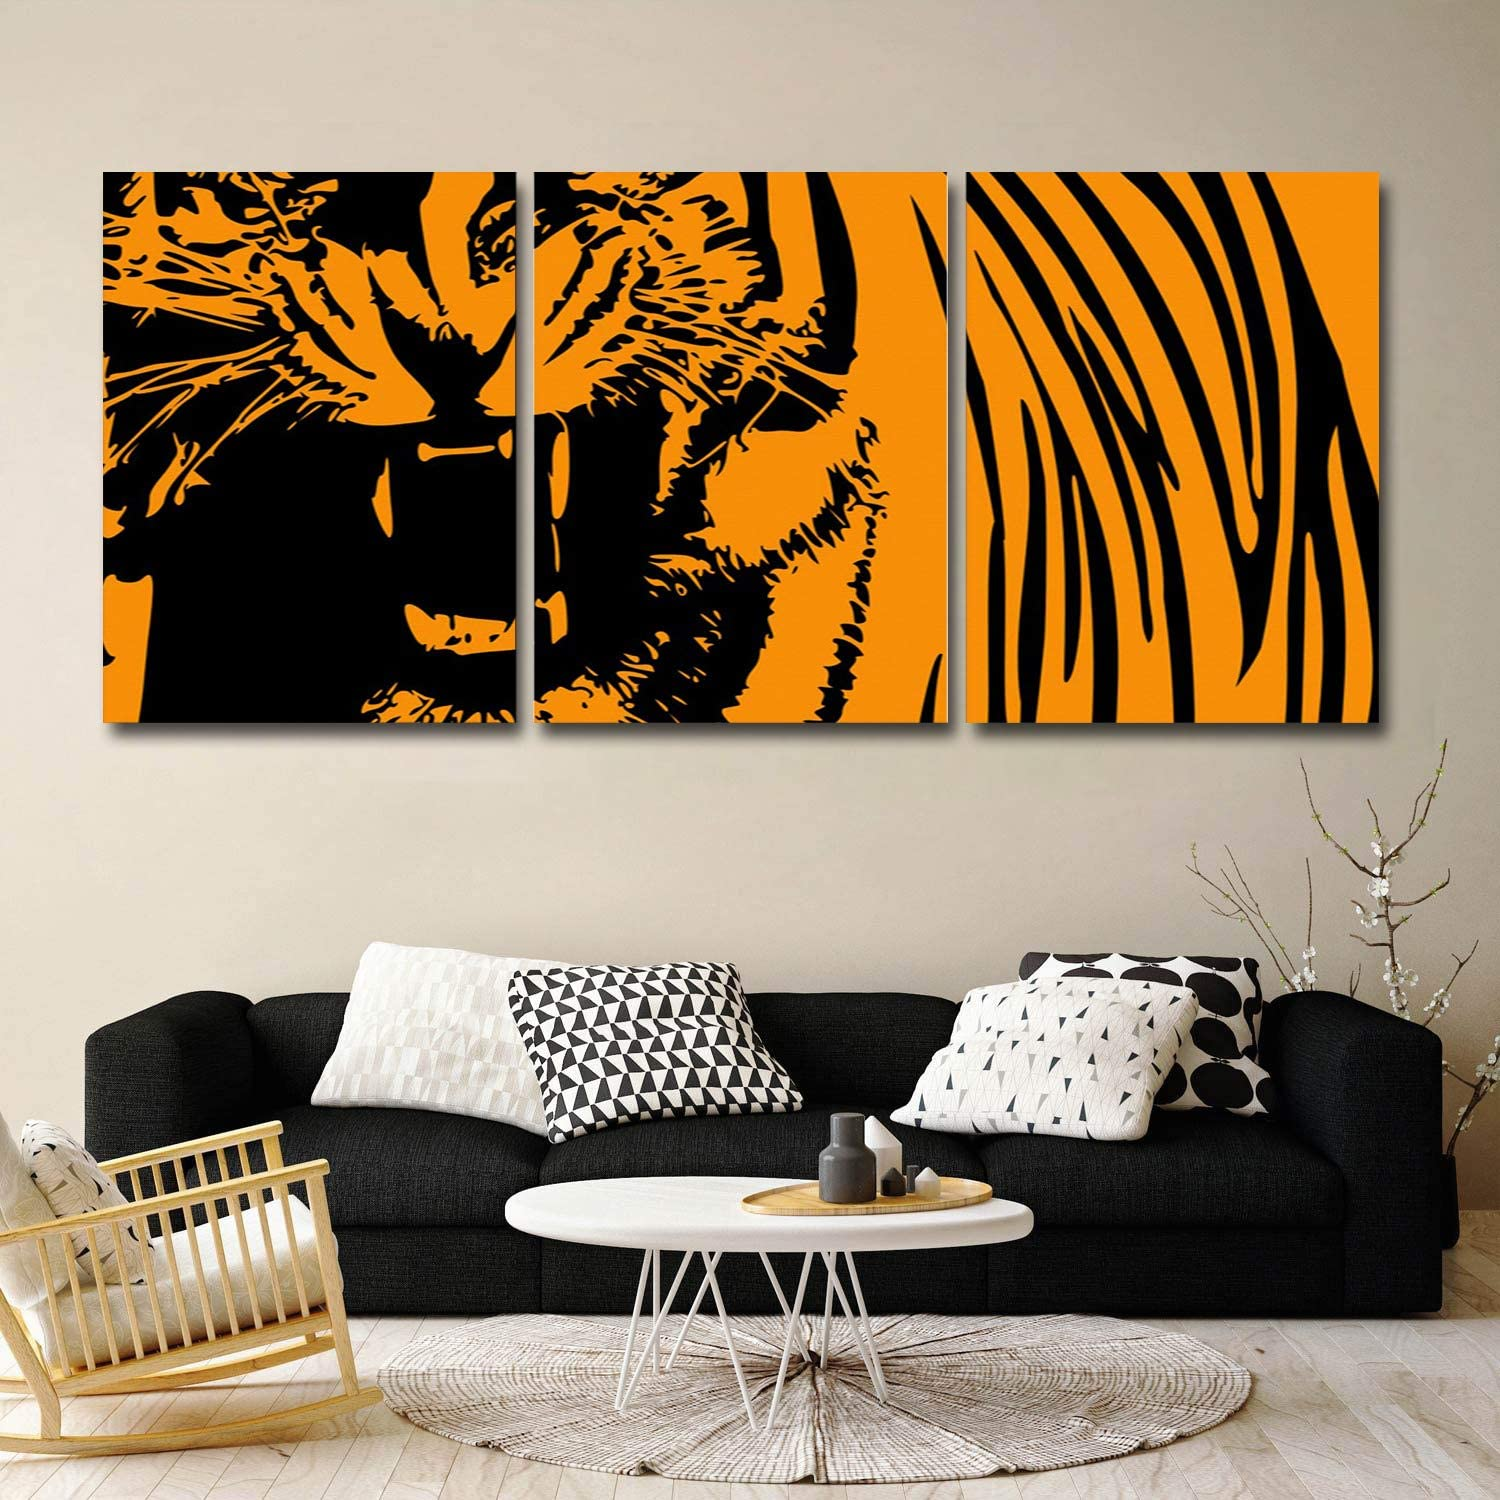 CyCoShower ! Super beauty product restock quality top! 67% OFF of fixed price 3 Panel Oil Paintings on Canvas Orang Animal Art Wall